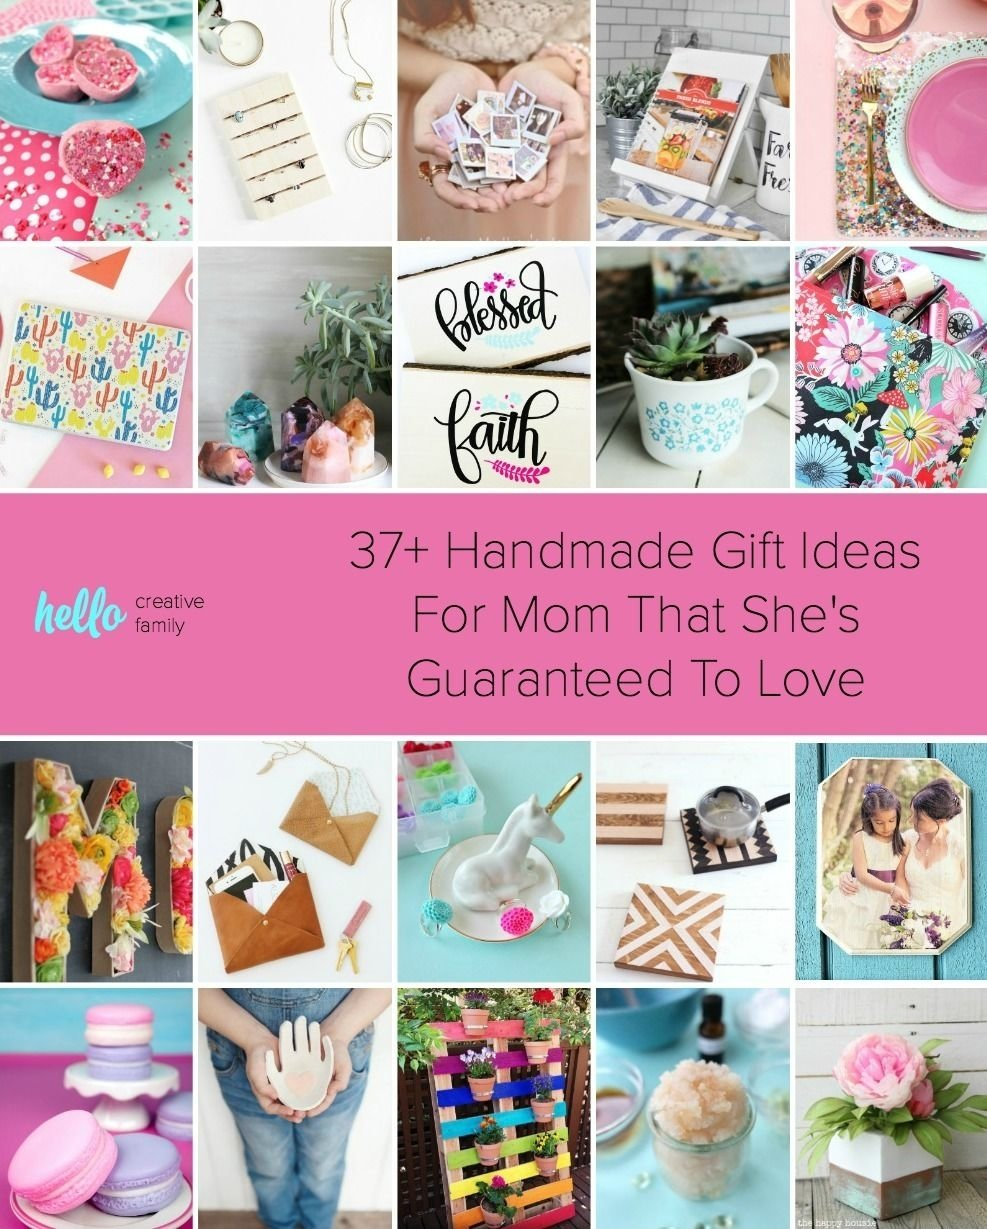 10 Pretty Handmade Gift Ideas For Women 37 handmade gift ideas for mom that shes guaranteed to love diy 2020